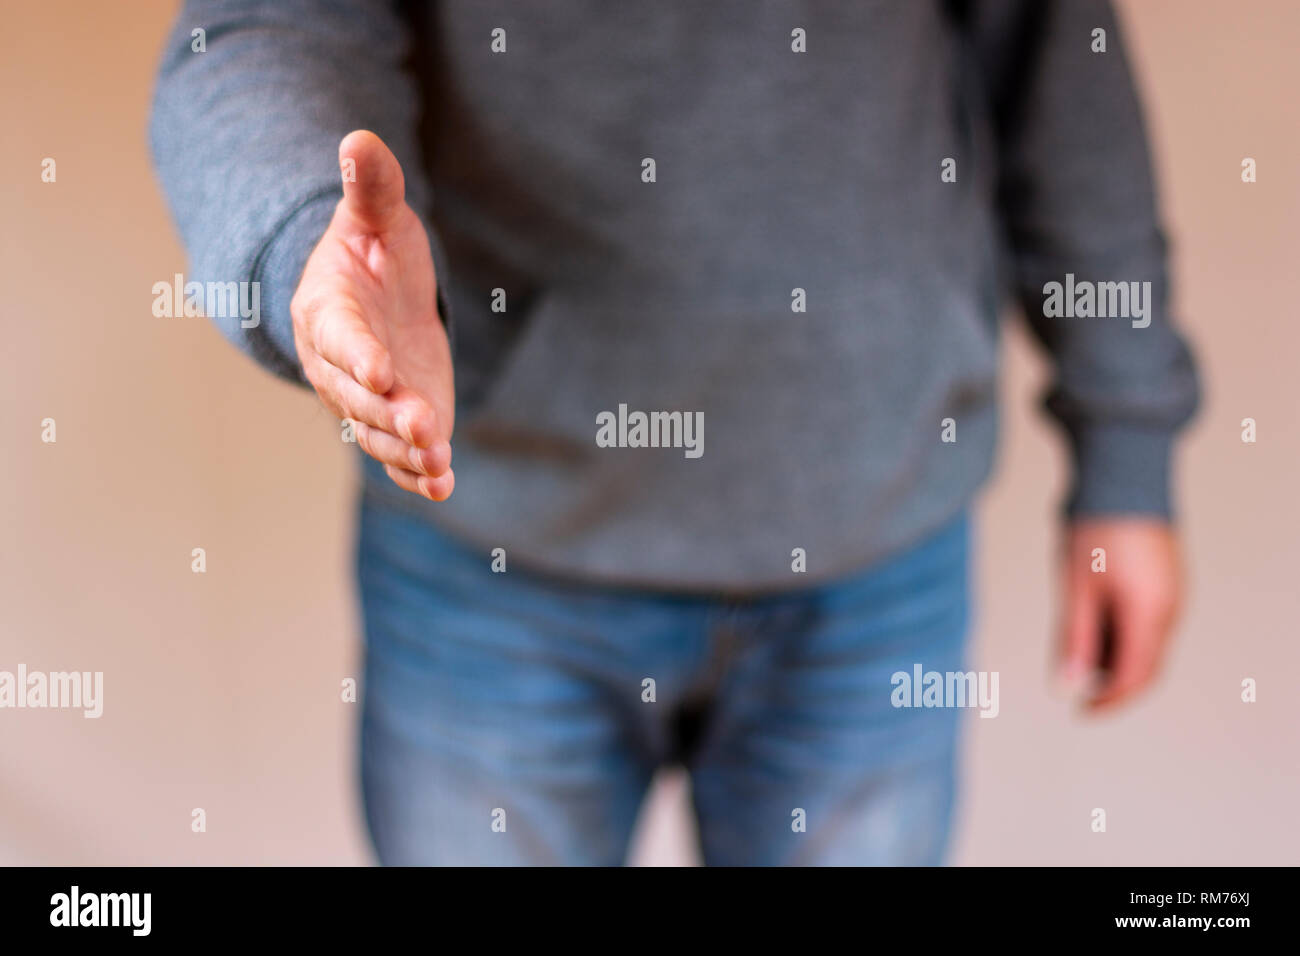 Hand reaching out for a handshake - Stock Image